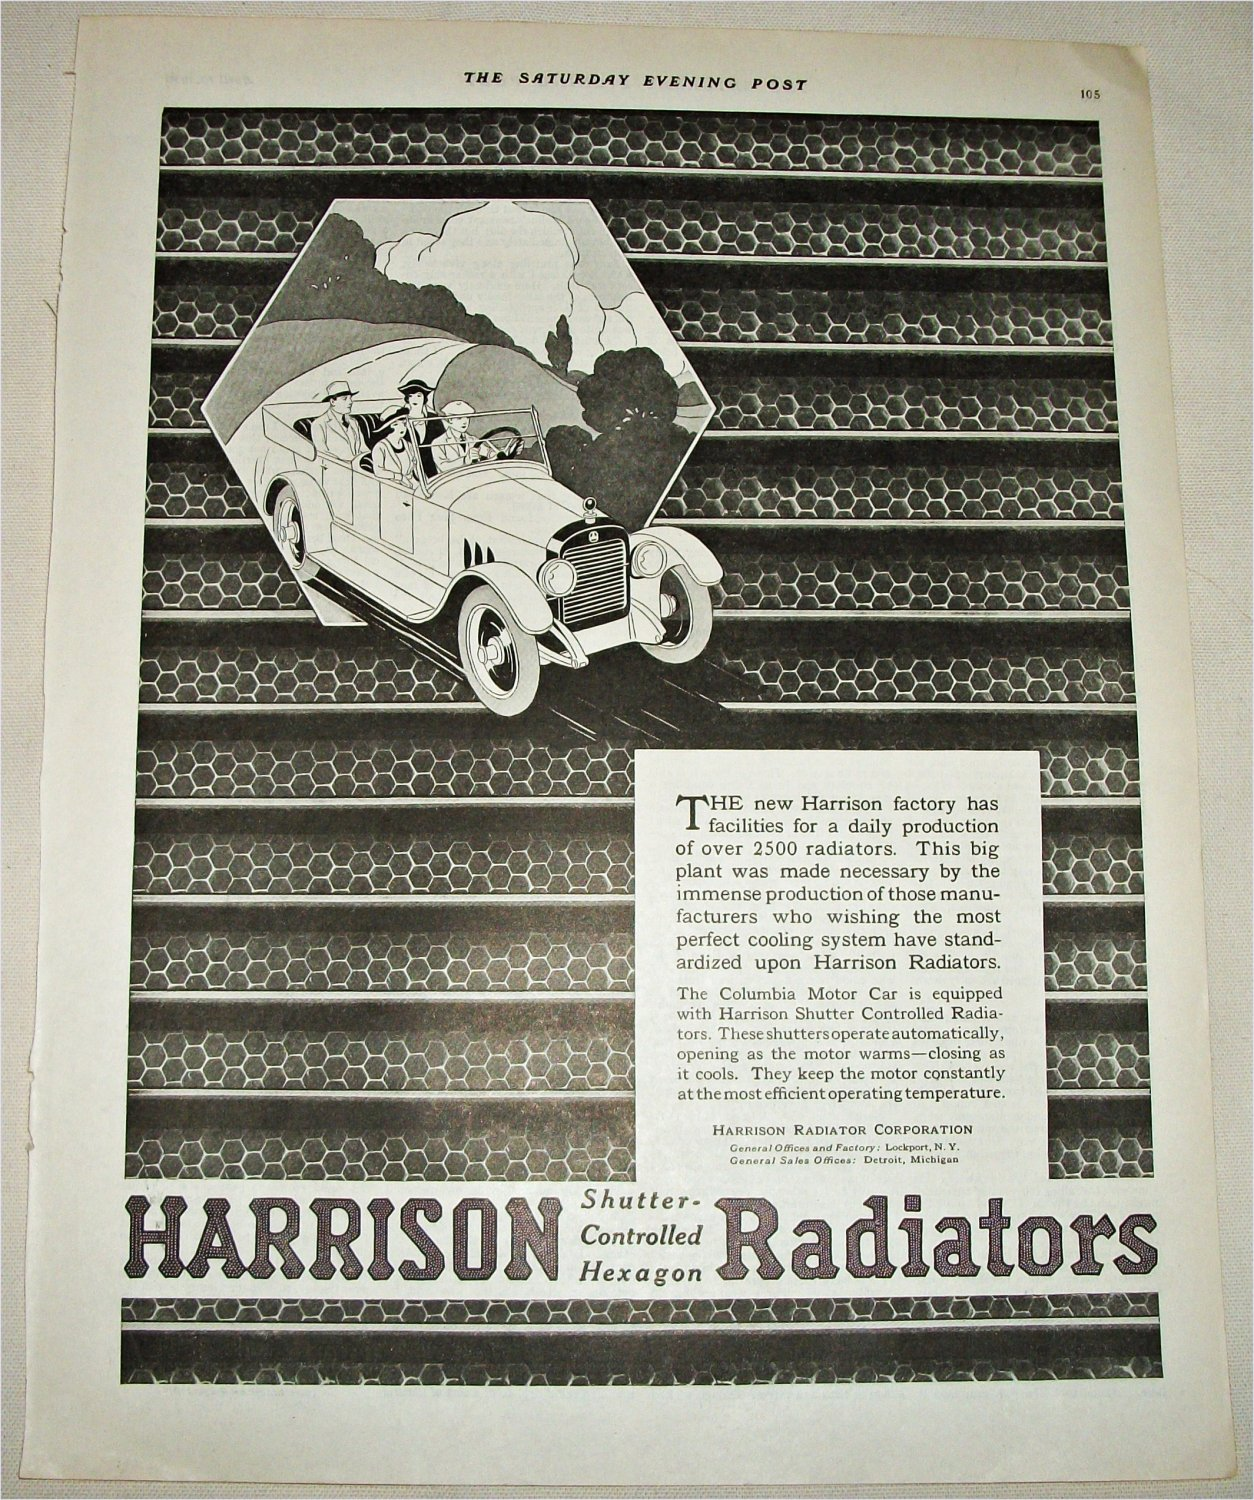 1920 Harrison Radiators ad